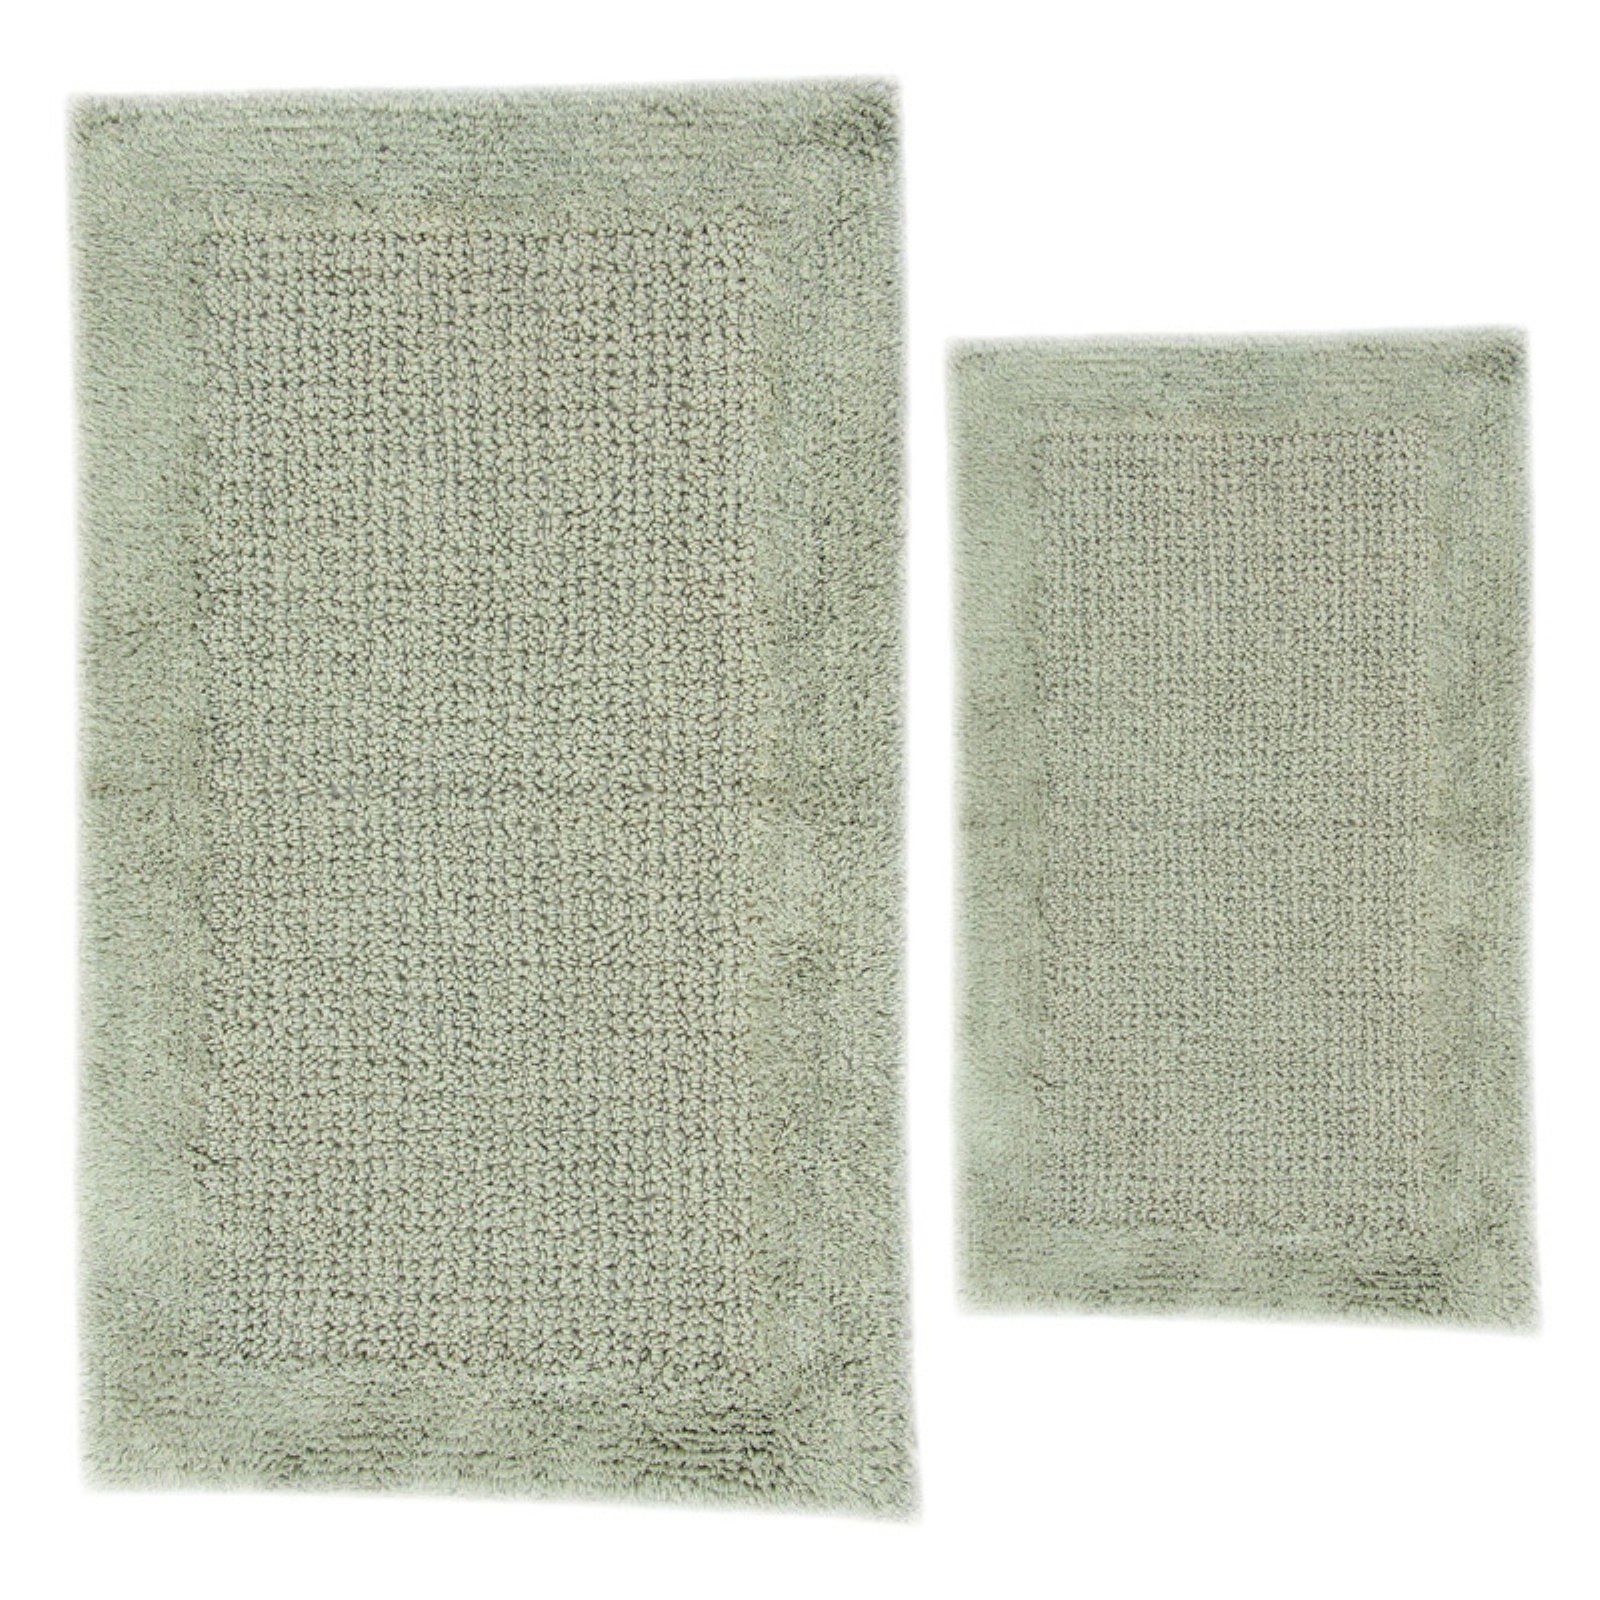 Elegance Collection Naples Bath Rug - Set of 2